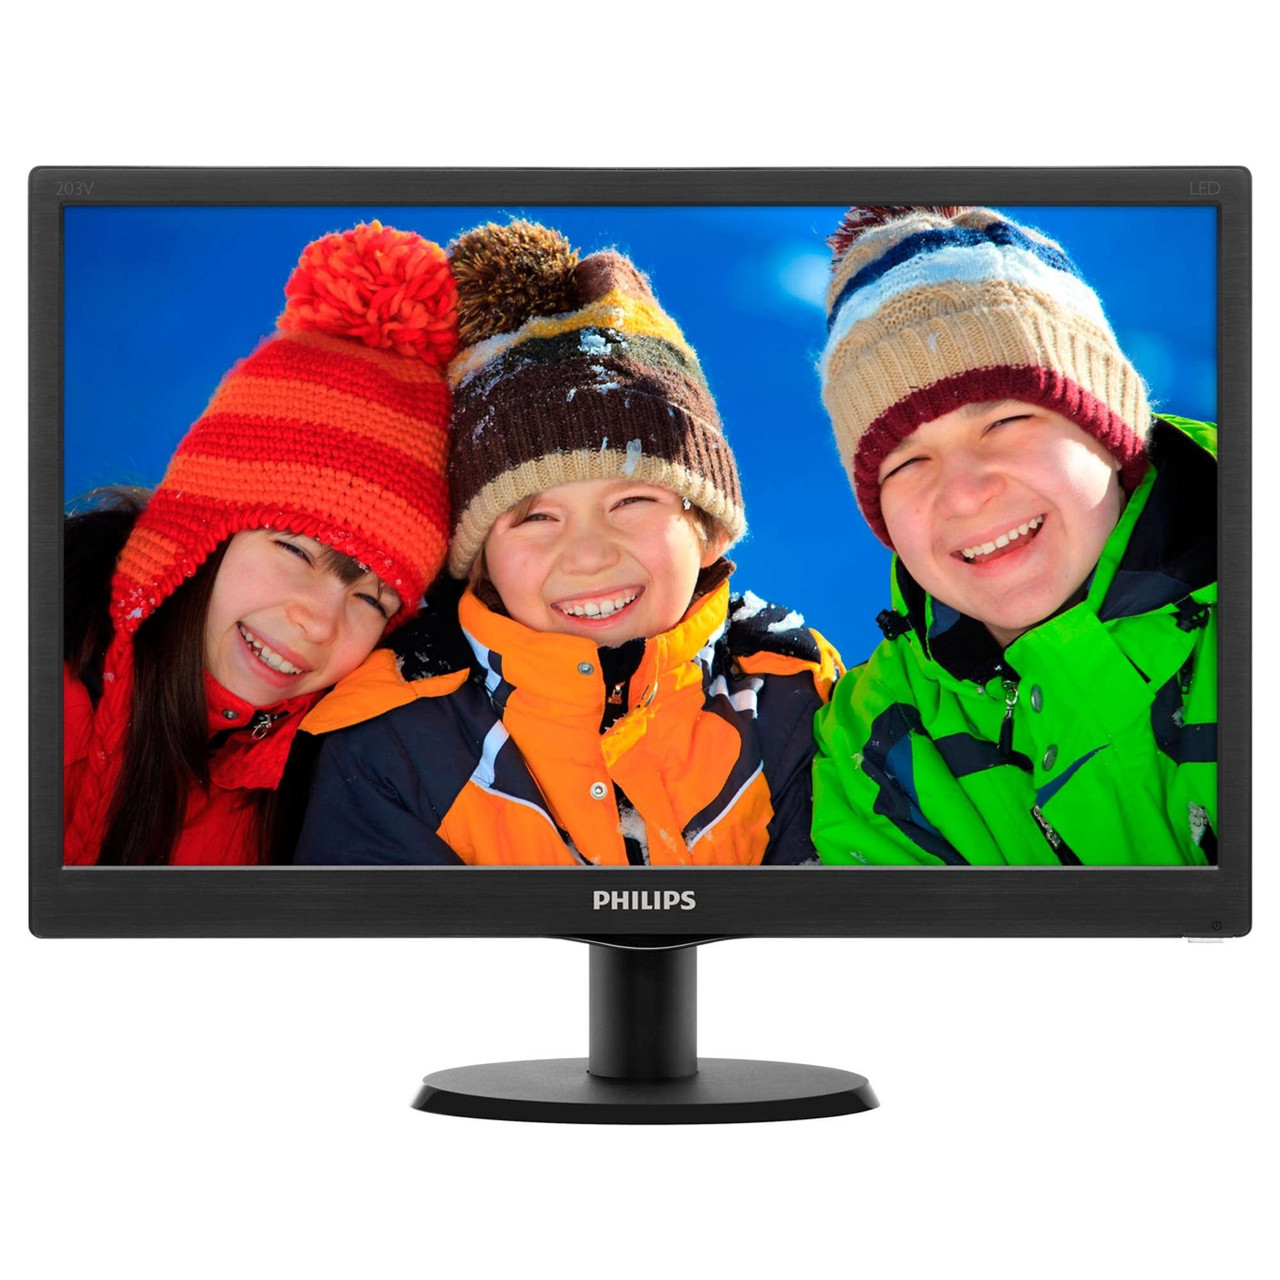 "Монитор 22"" PHILIPS 223V5LSB2/62 Black WLED TN 1920x1080 5 мс 250 кд\м2"